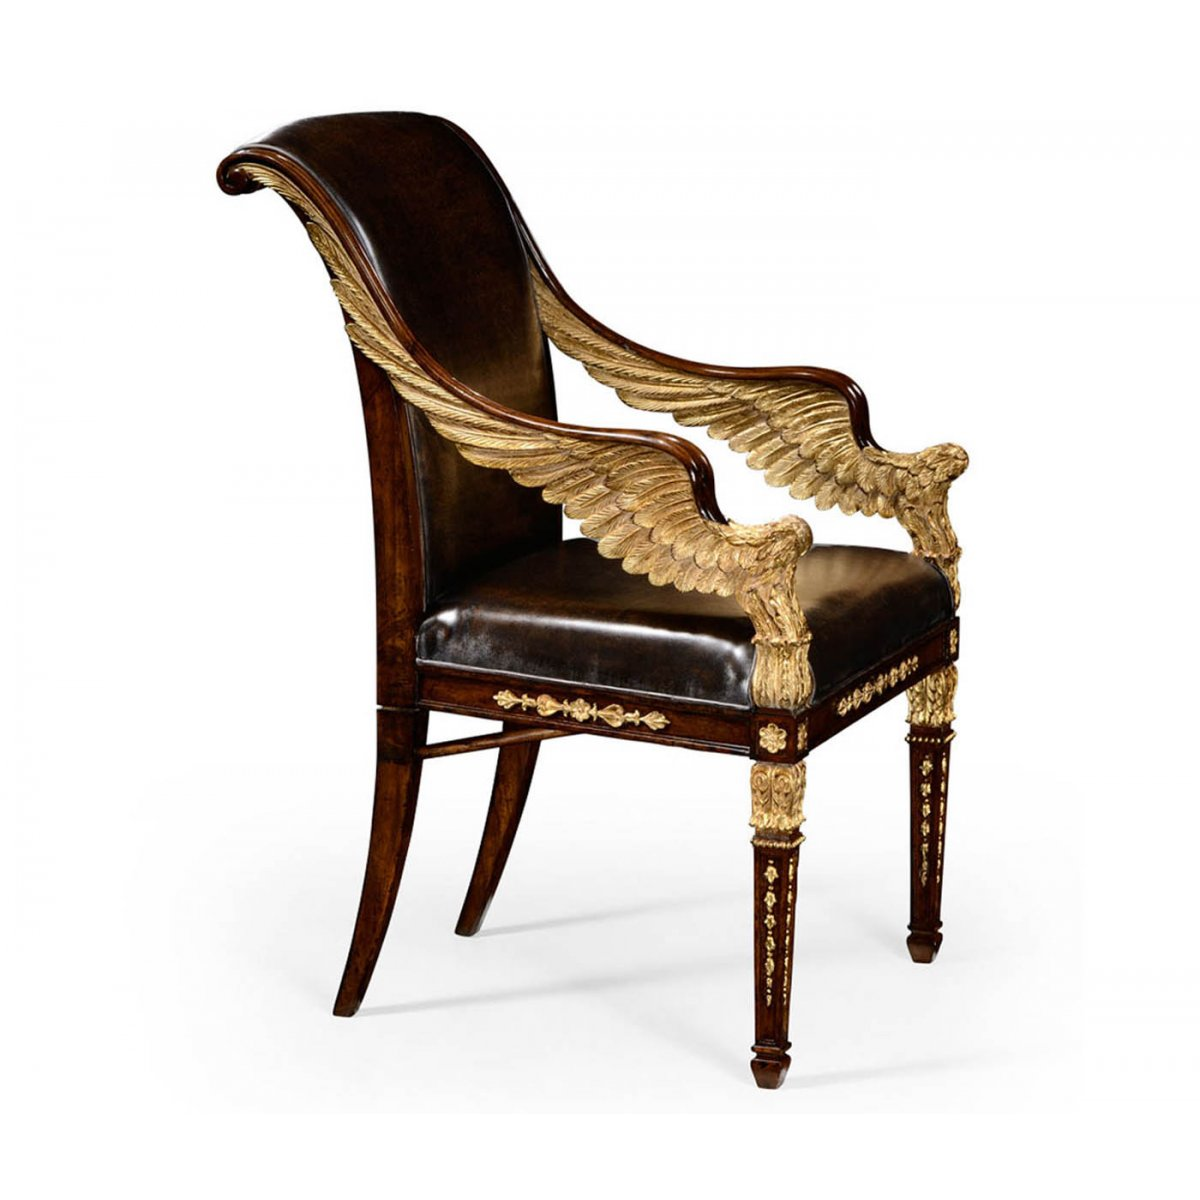 Designer Gilded Leather Armchair Swanky Interiors